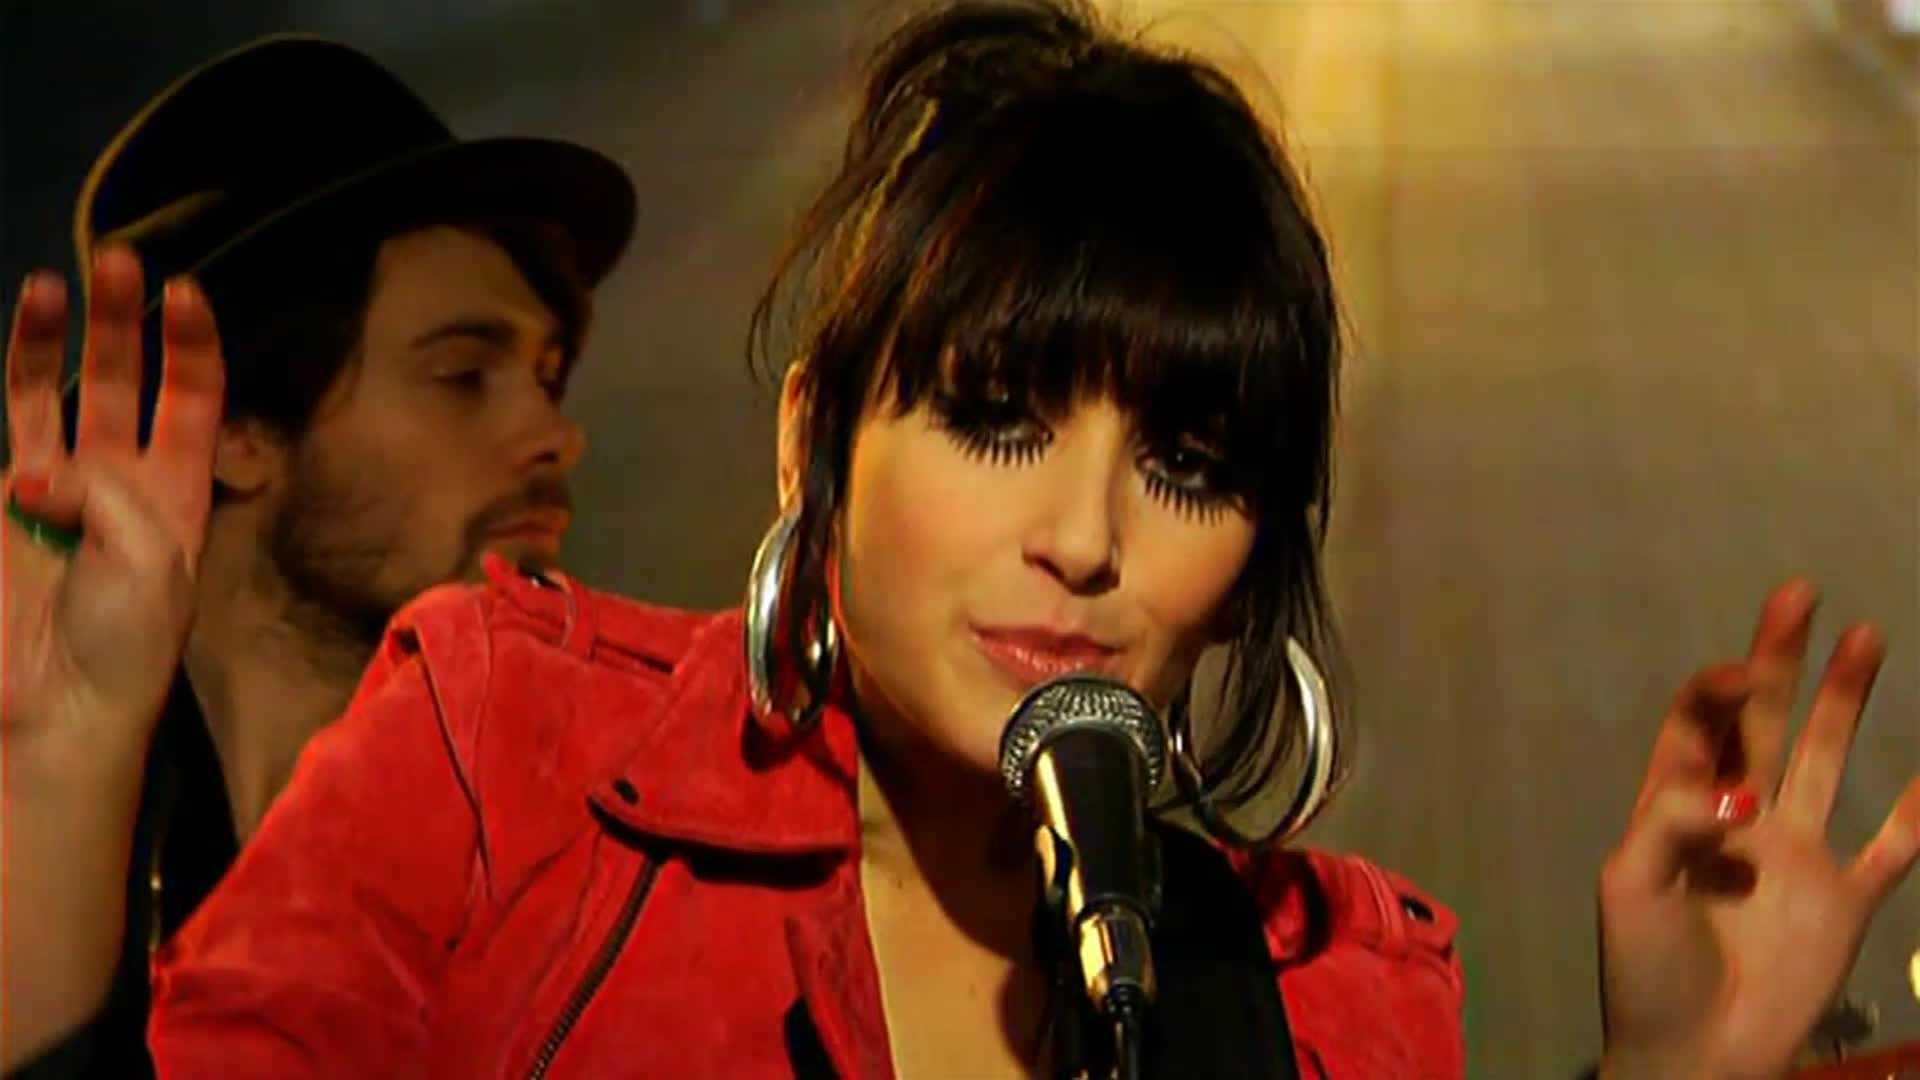 Howling Bells - Cities Burning Down